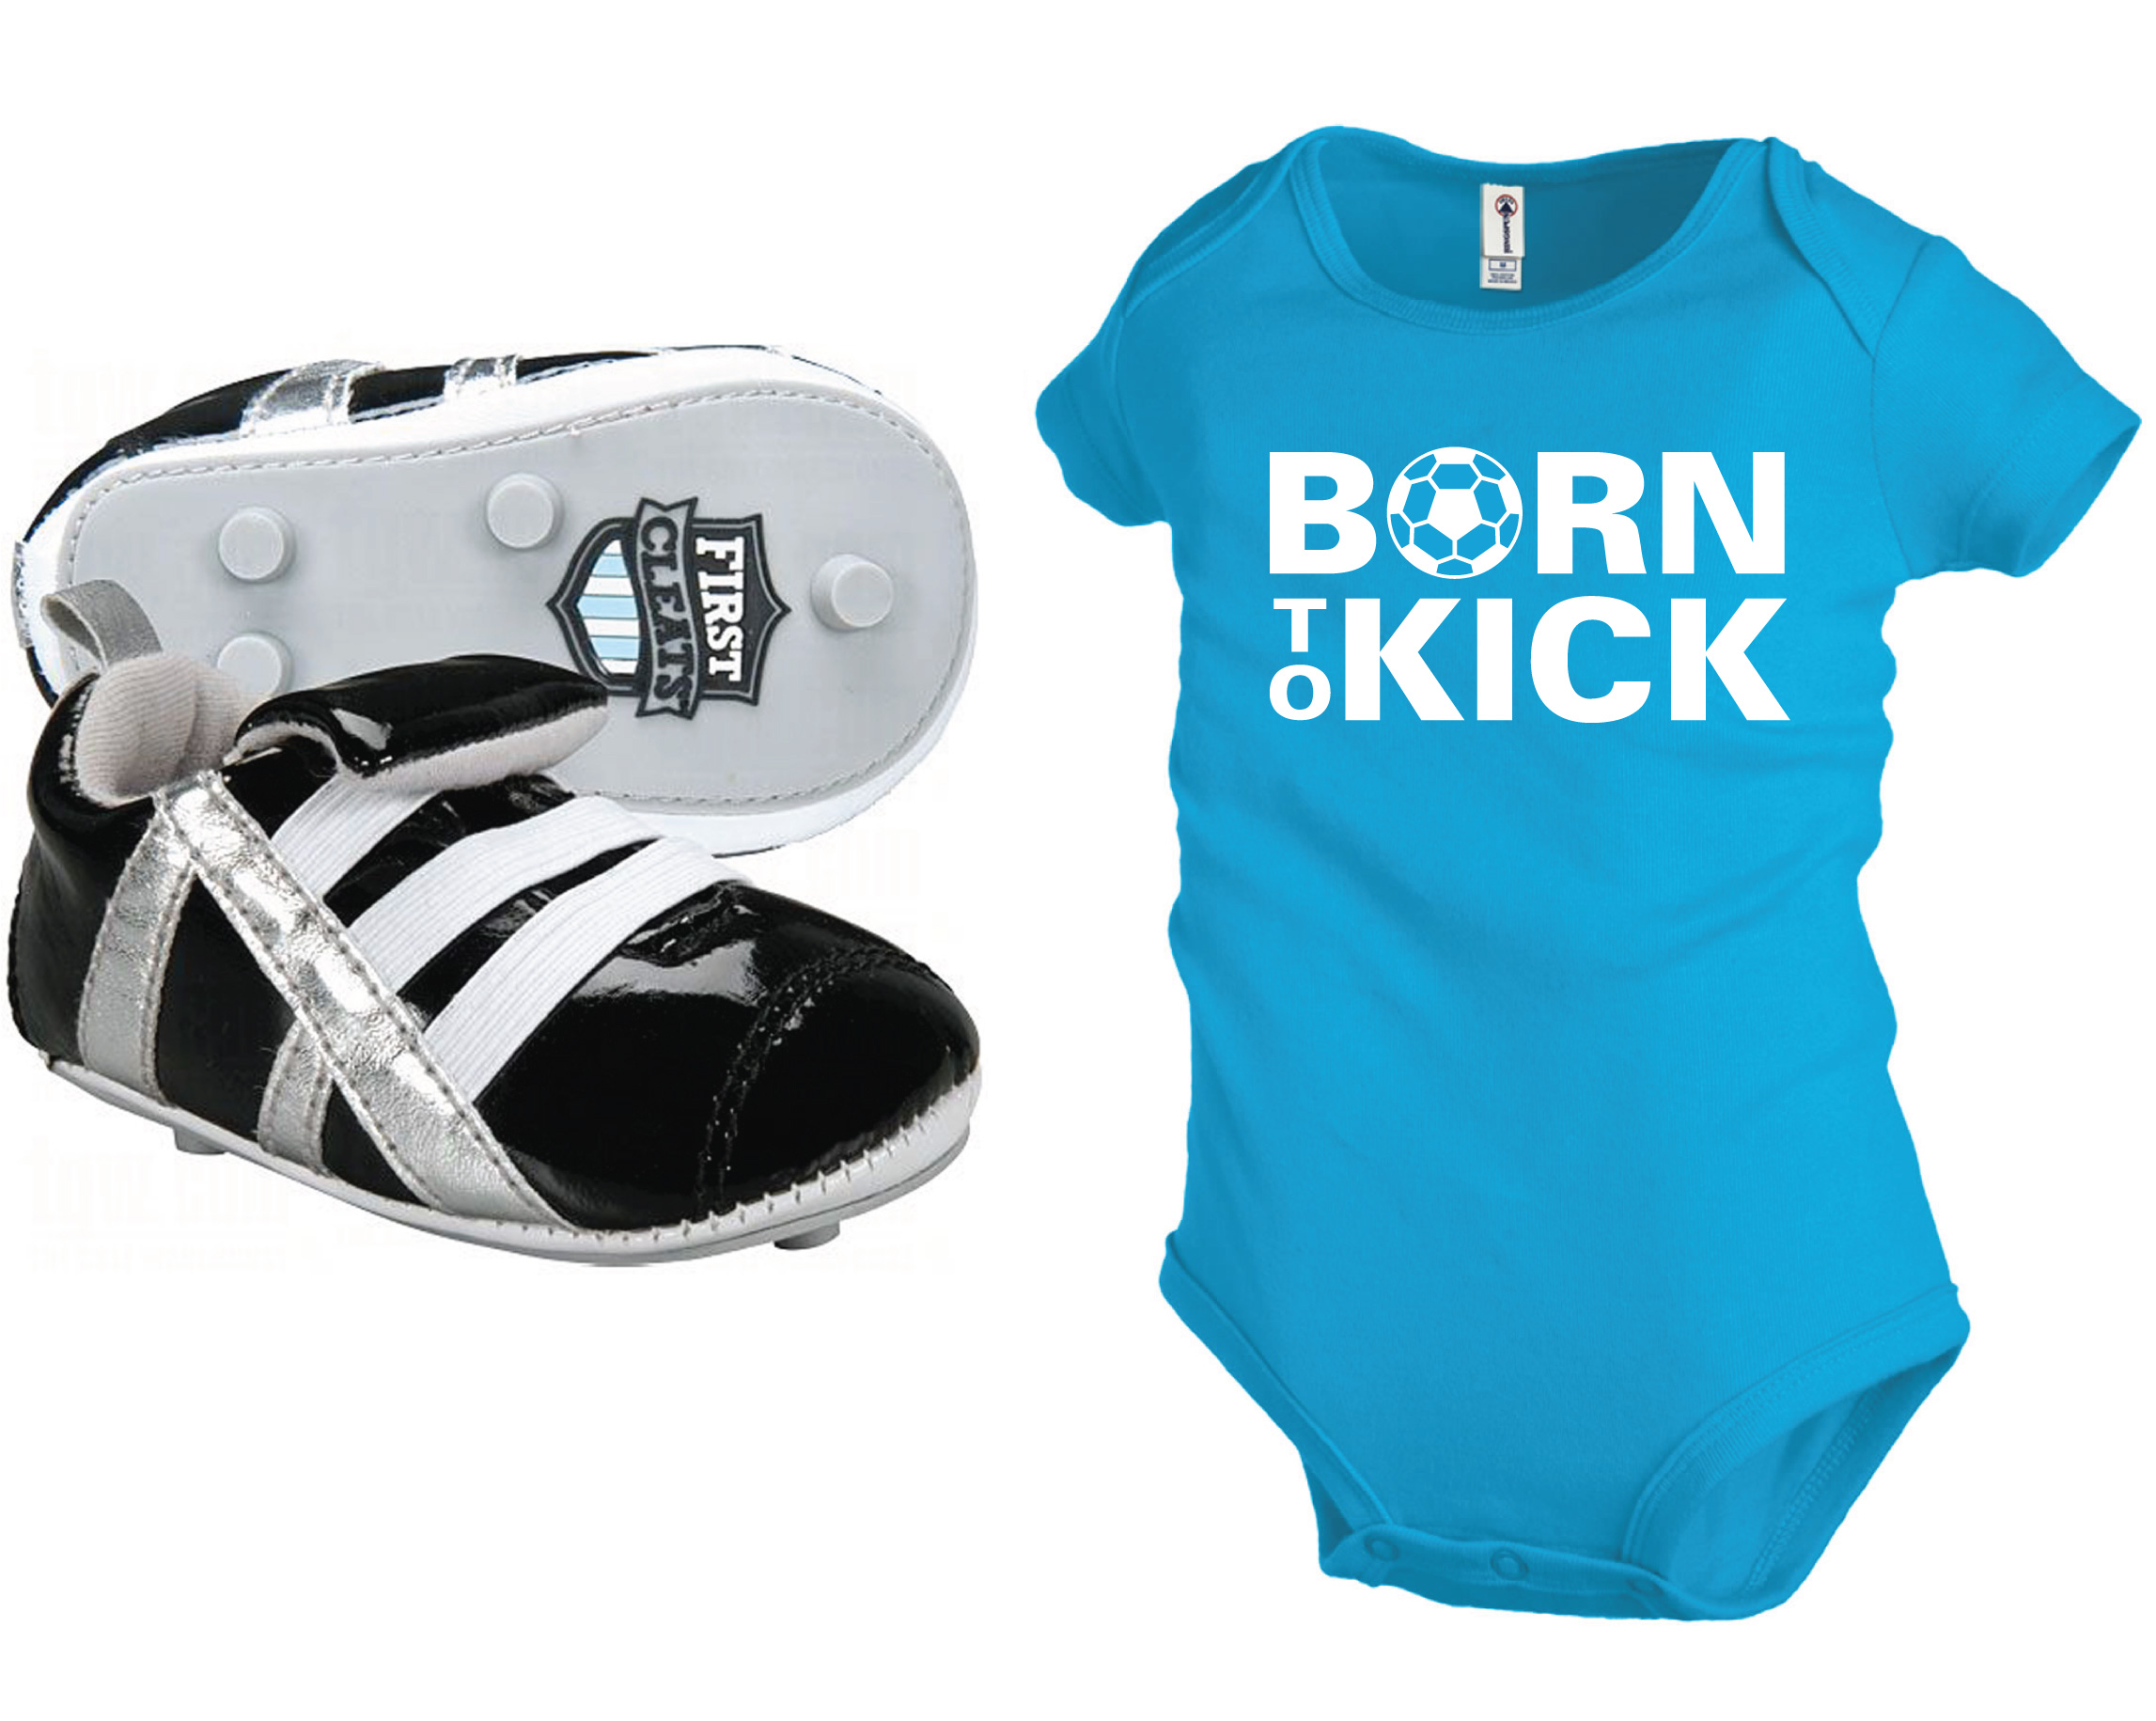 First Cleat soccer shoes for babies with turquoise Born To Kick onesie by Code Four Athletics